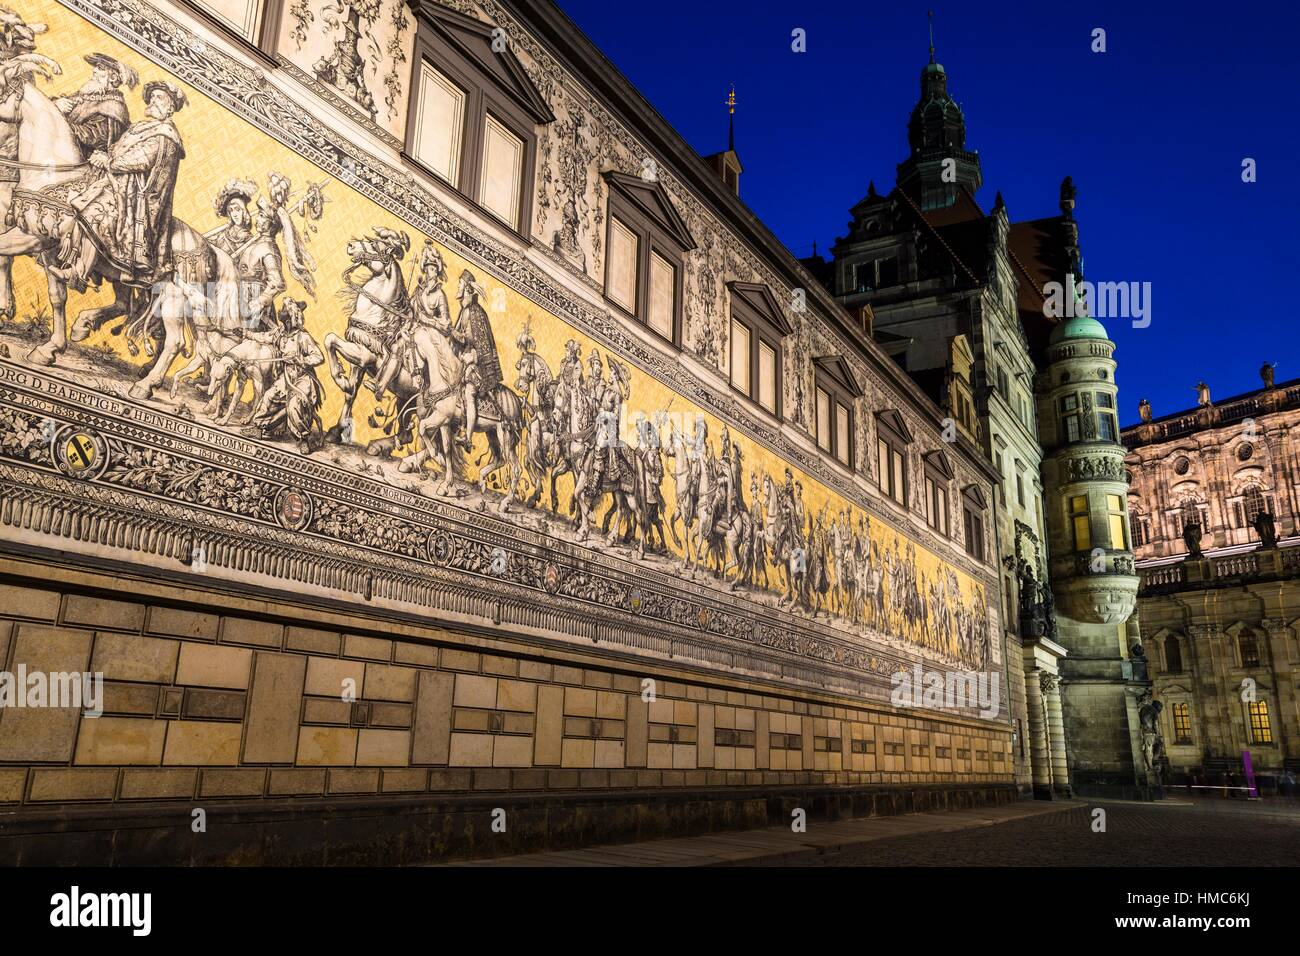 The Procession of Dukes, a parade of rulers of the house of Saxe-Wettin made of Meissen porcelain tiles, with the - Stock Image